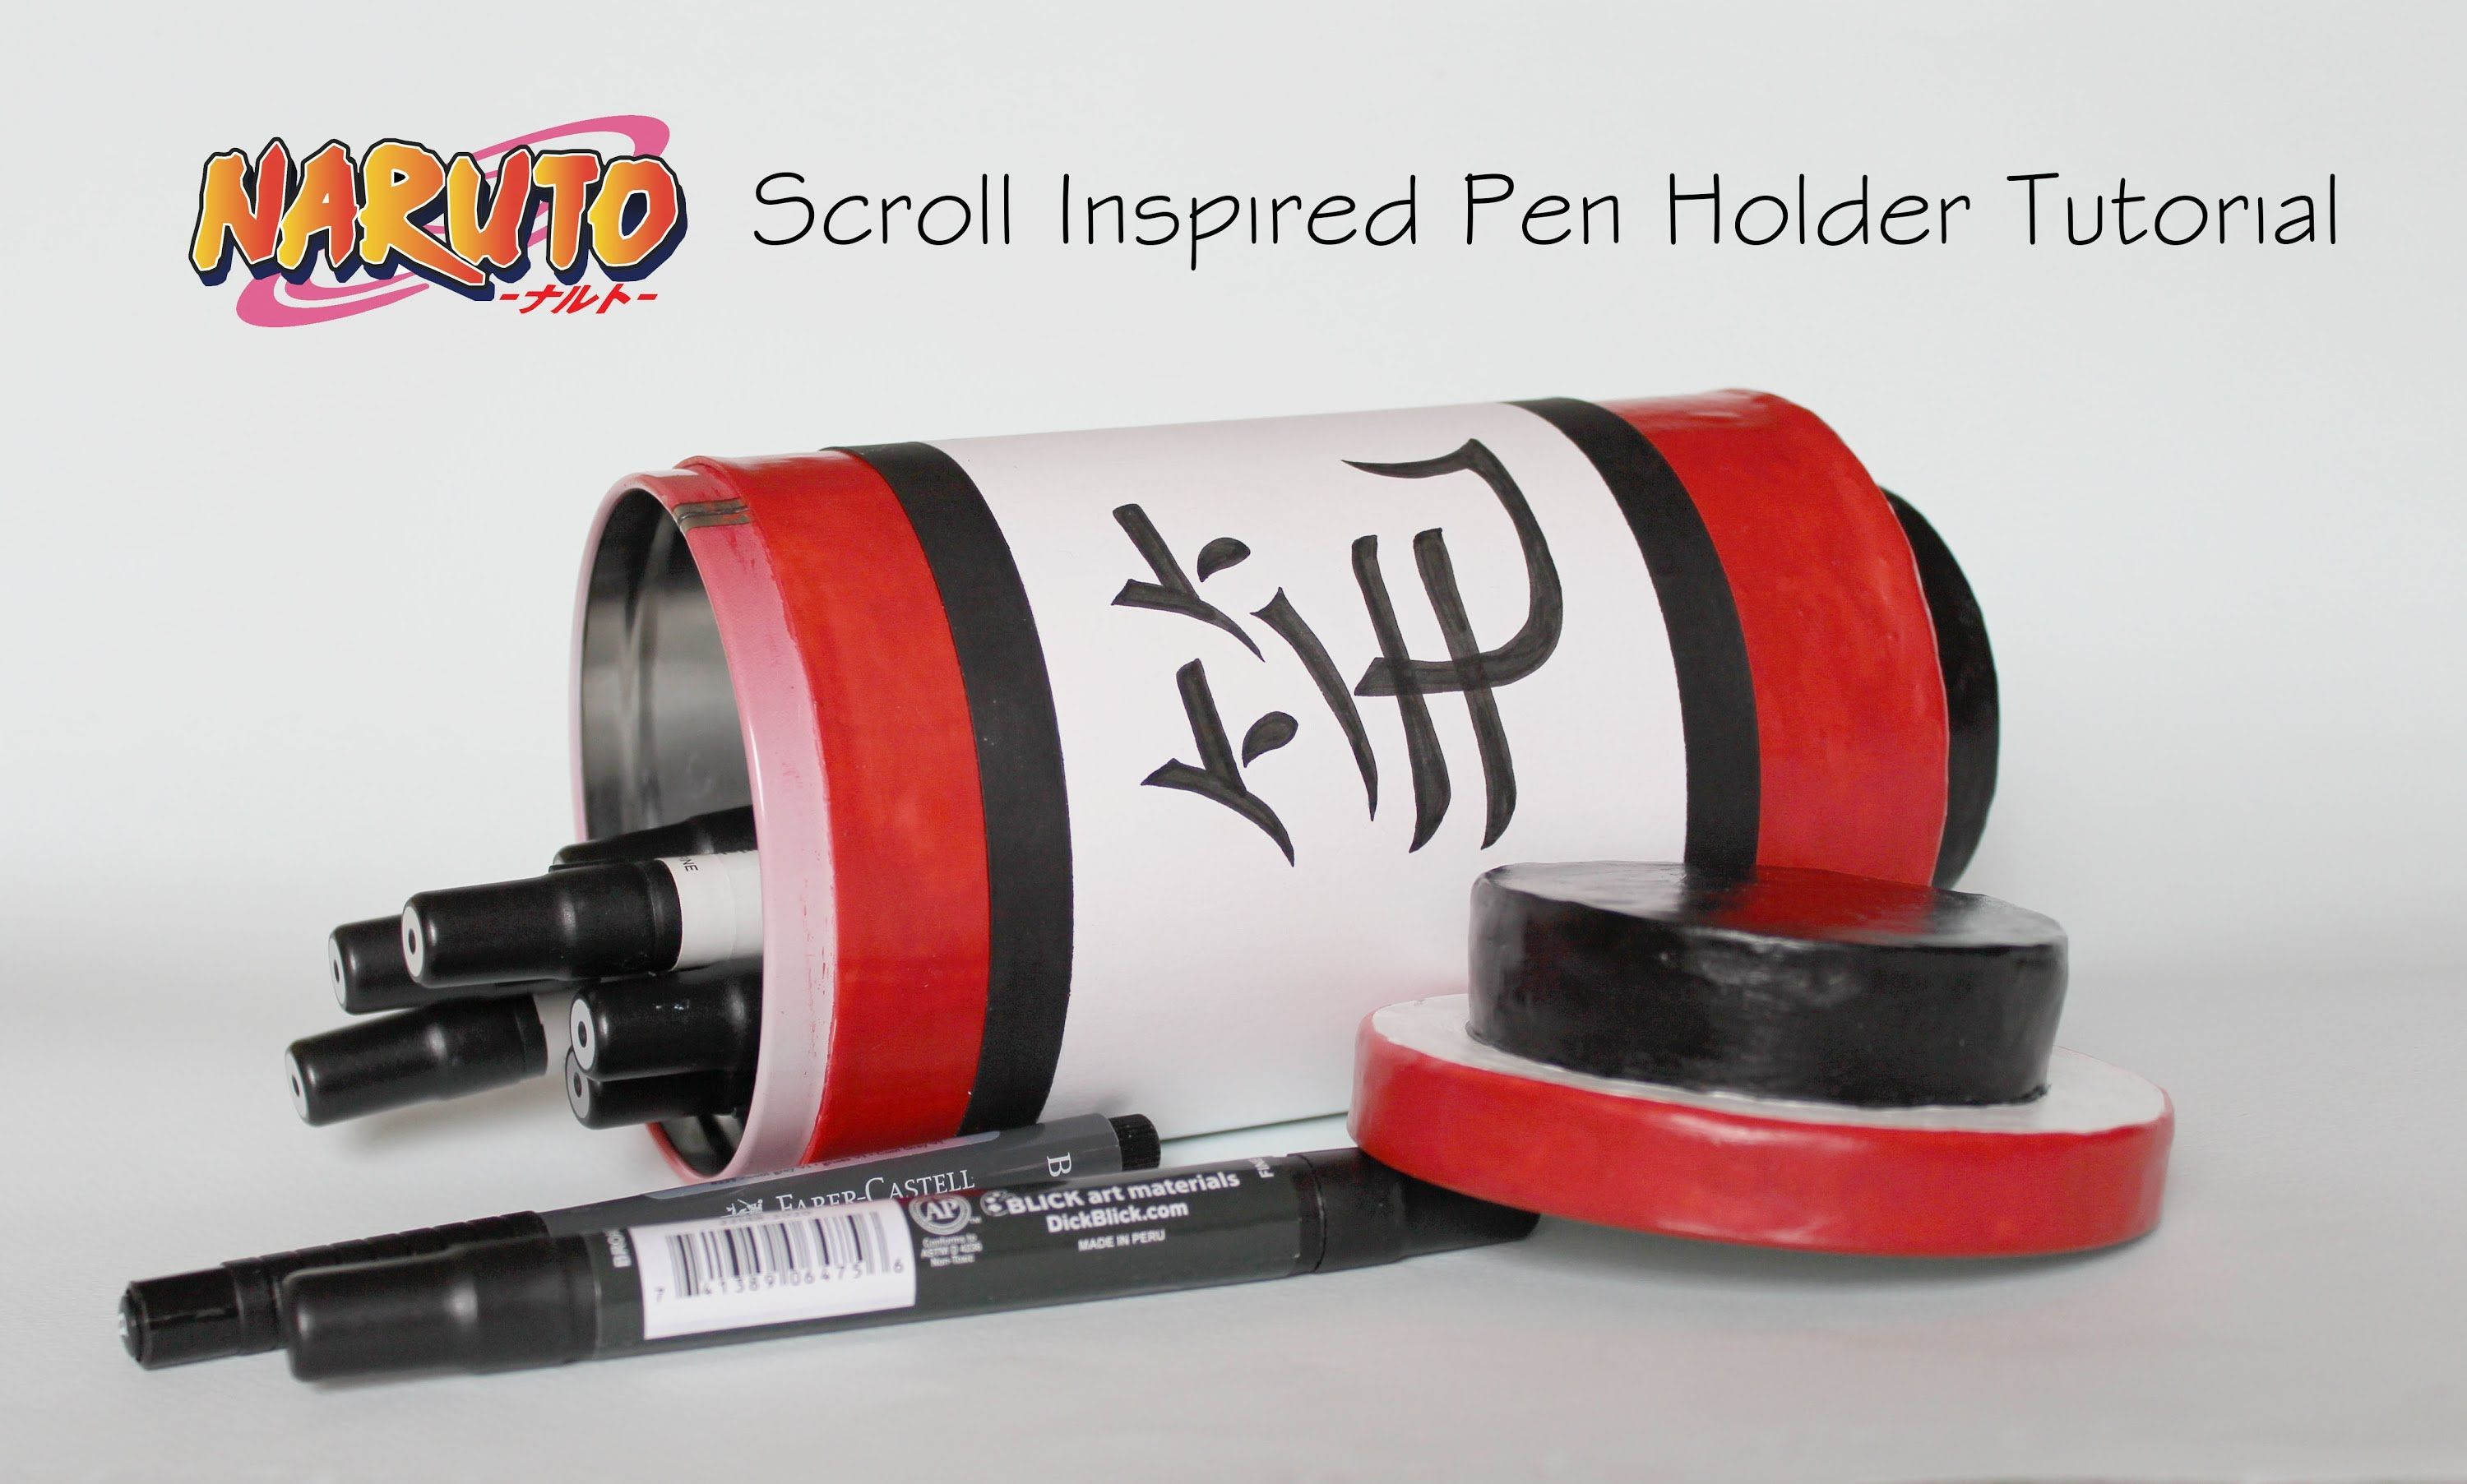 Naruto Scroll Inspired Pen Holder Tutorial Projects To